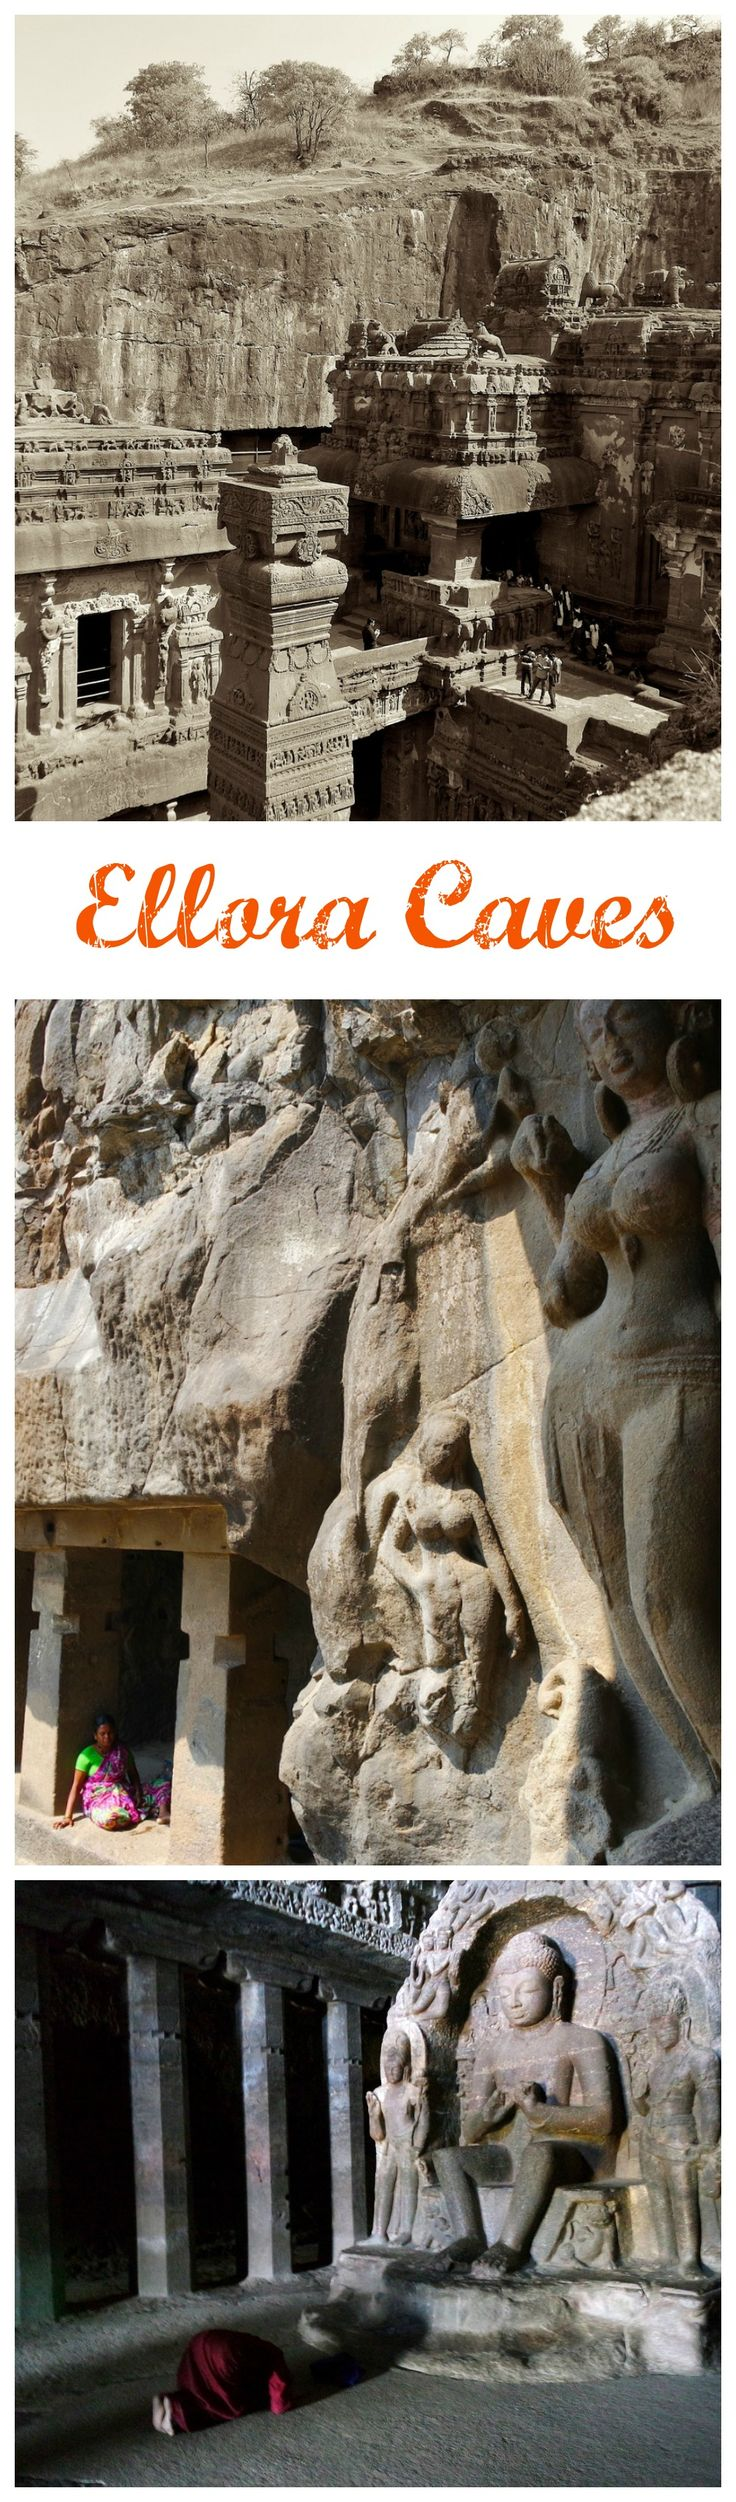 Hindu, Buddhist and Jain temples carved out of the hillside at Ellora Caves in India.